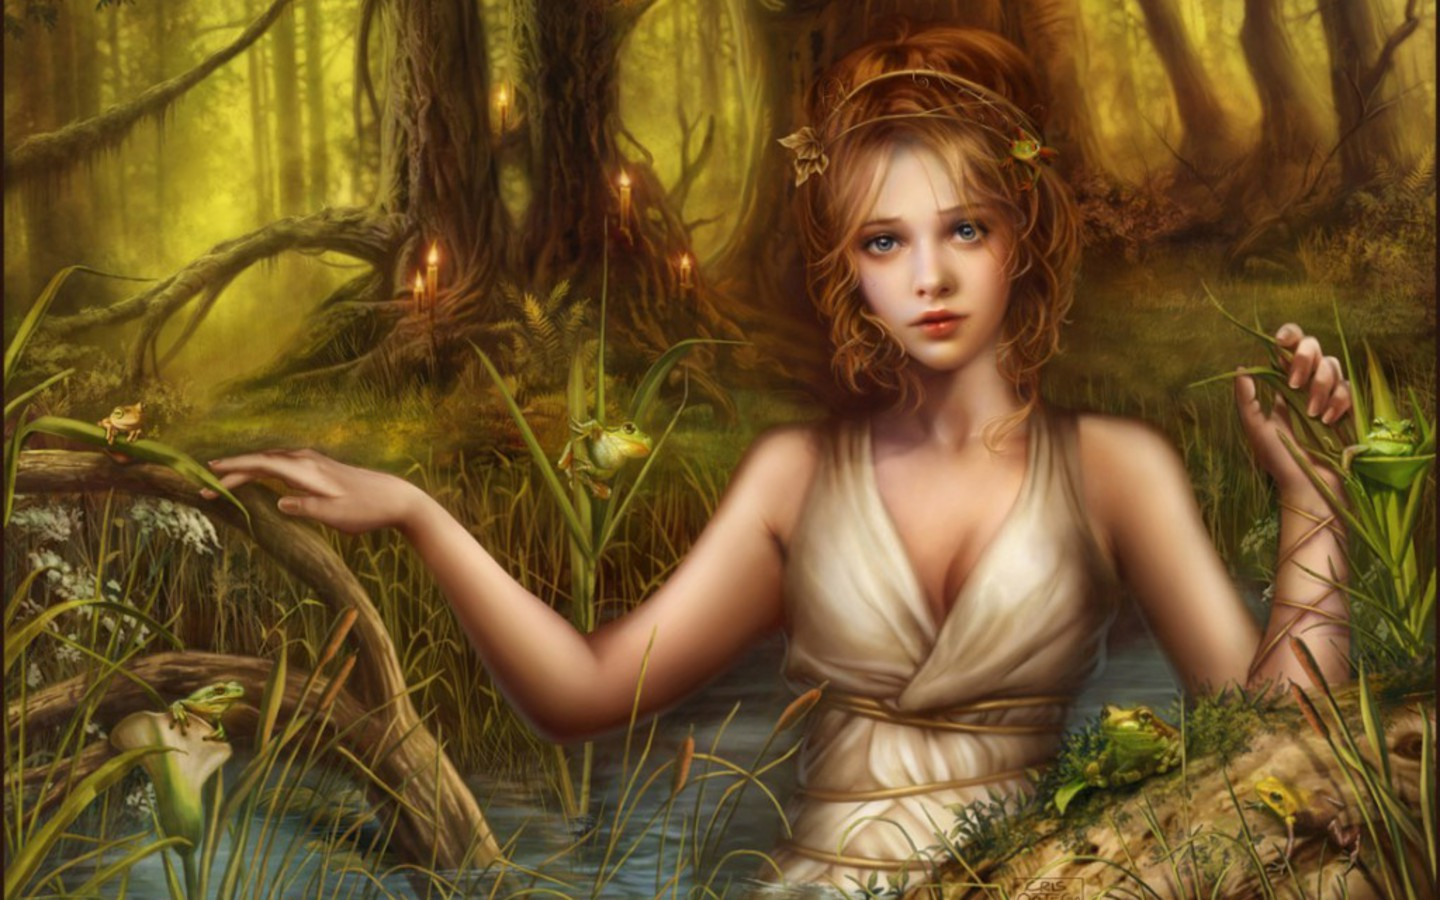 Beautiful Fantasy Girls HQ wallpapers 1440x900 free Download